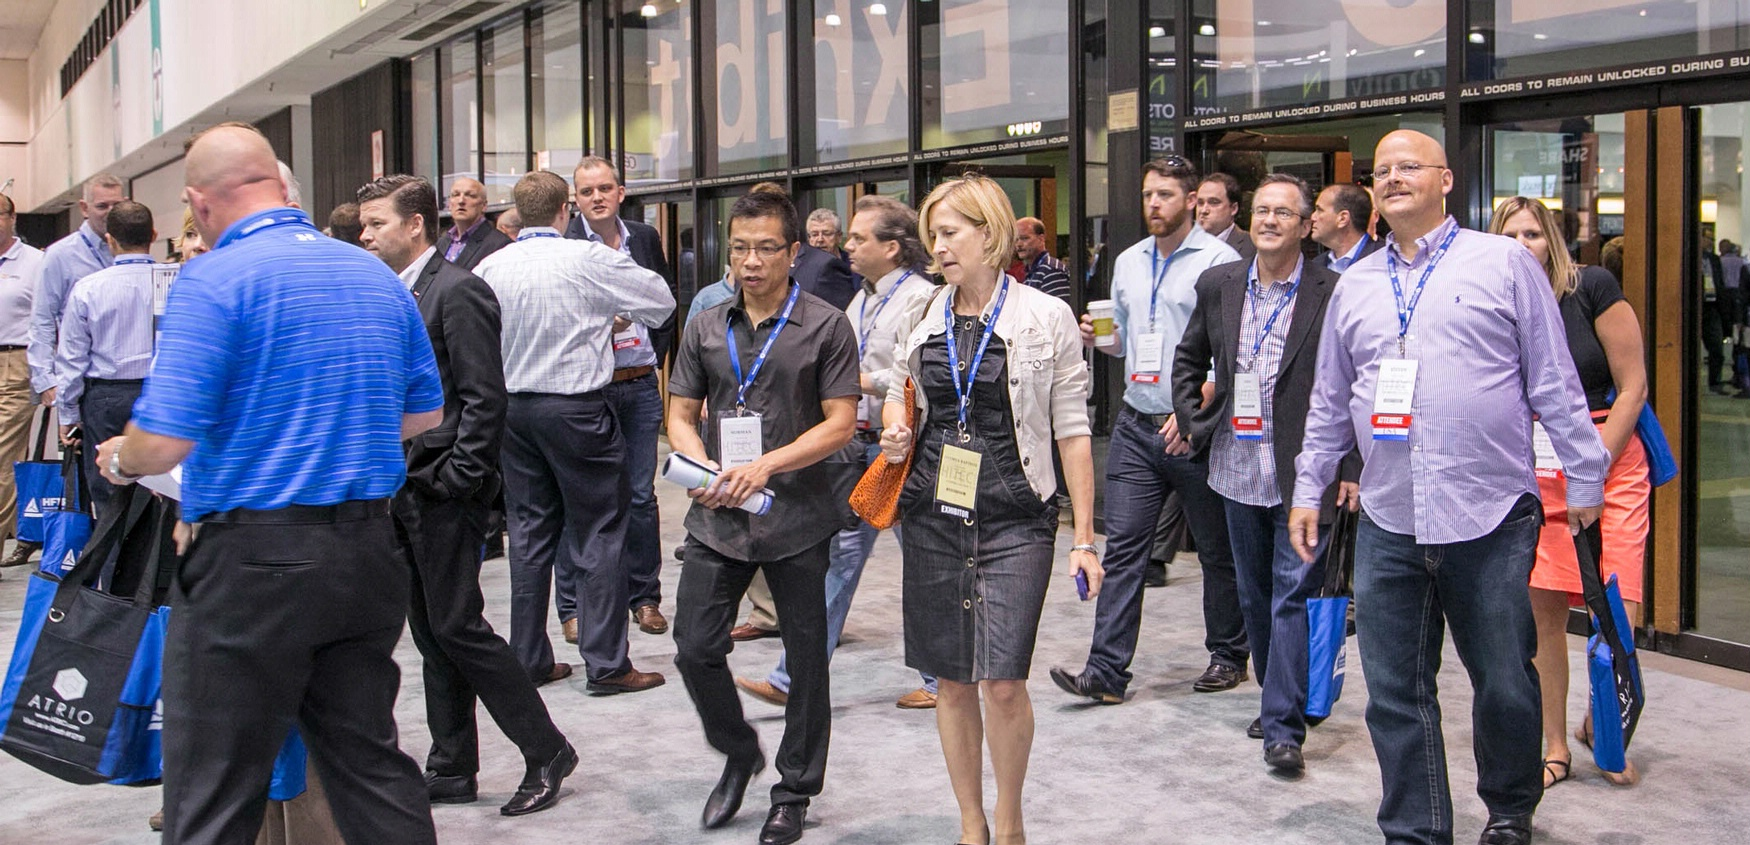 Attendees at HITEC, the world's largest hospitality technology show